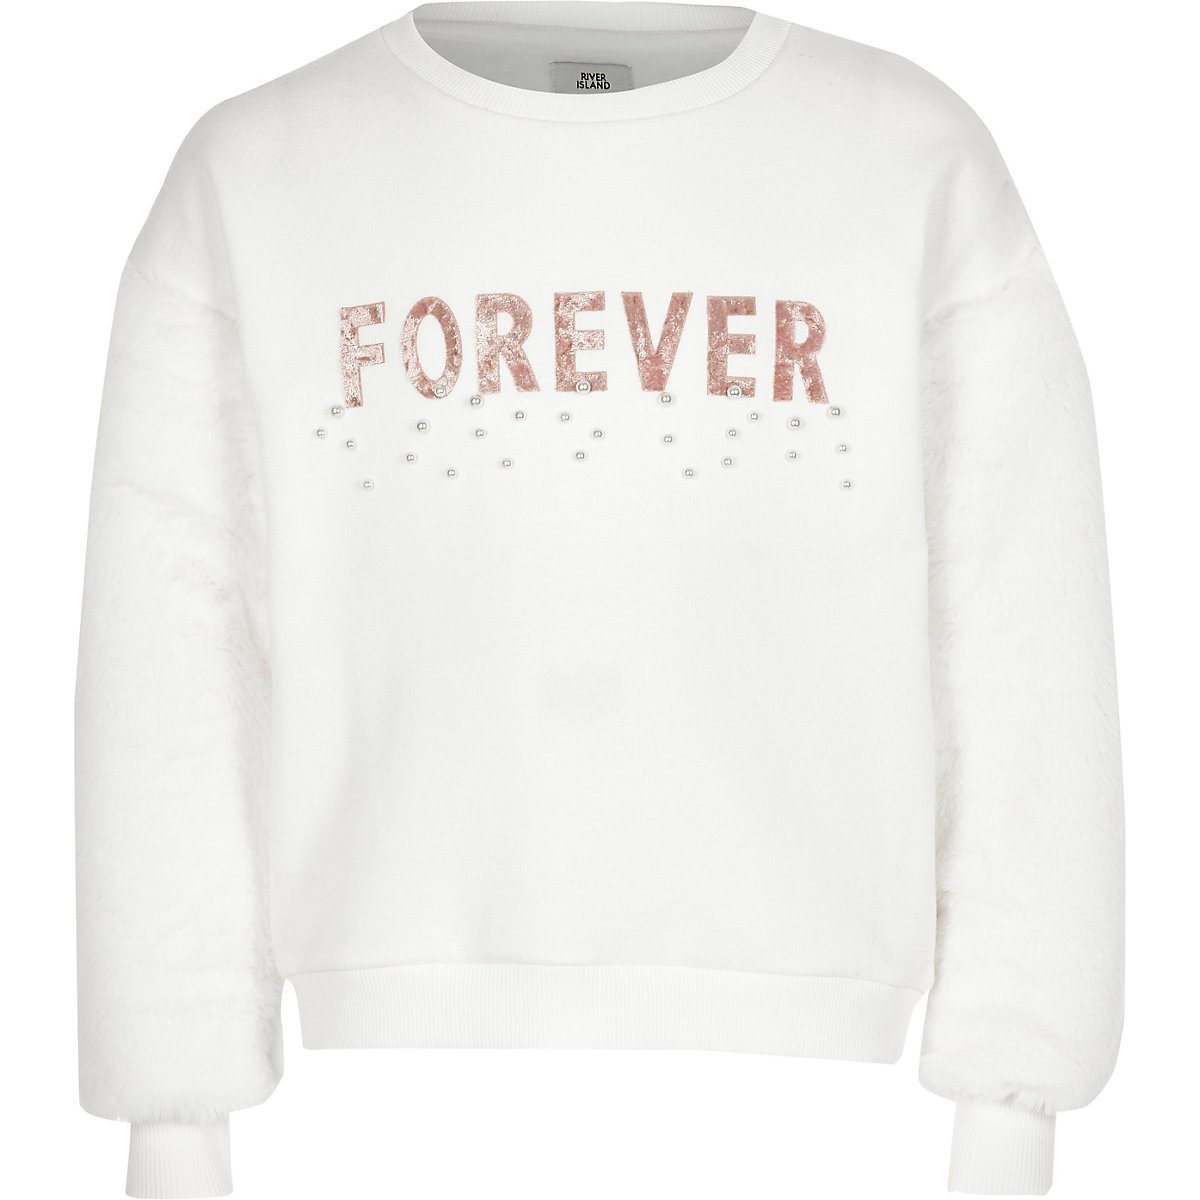 Girls cream faux fur sleeve sweatshirt